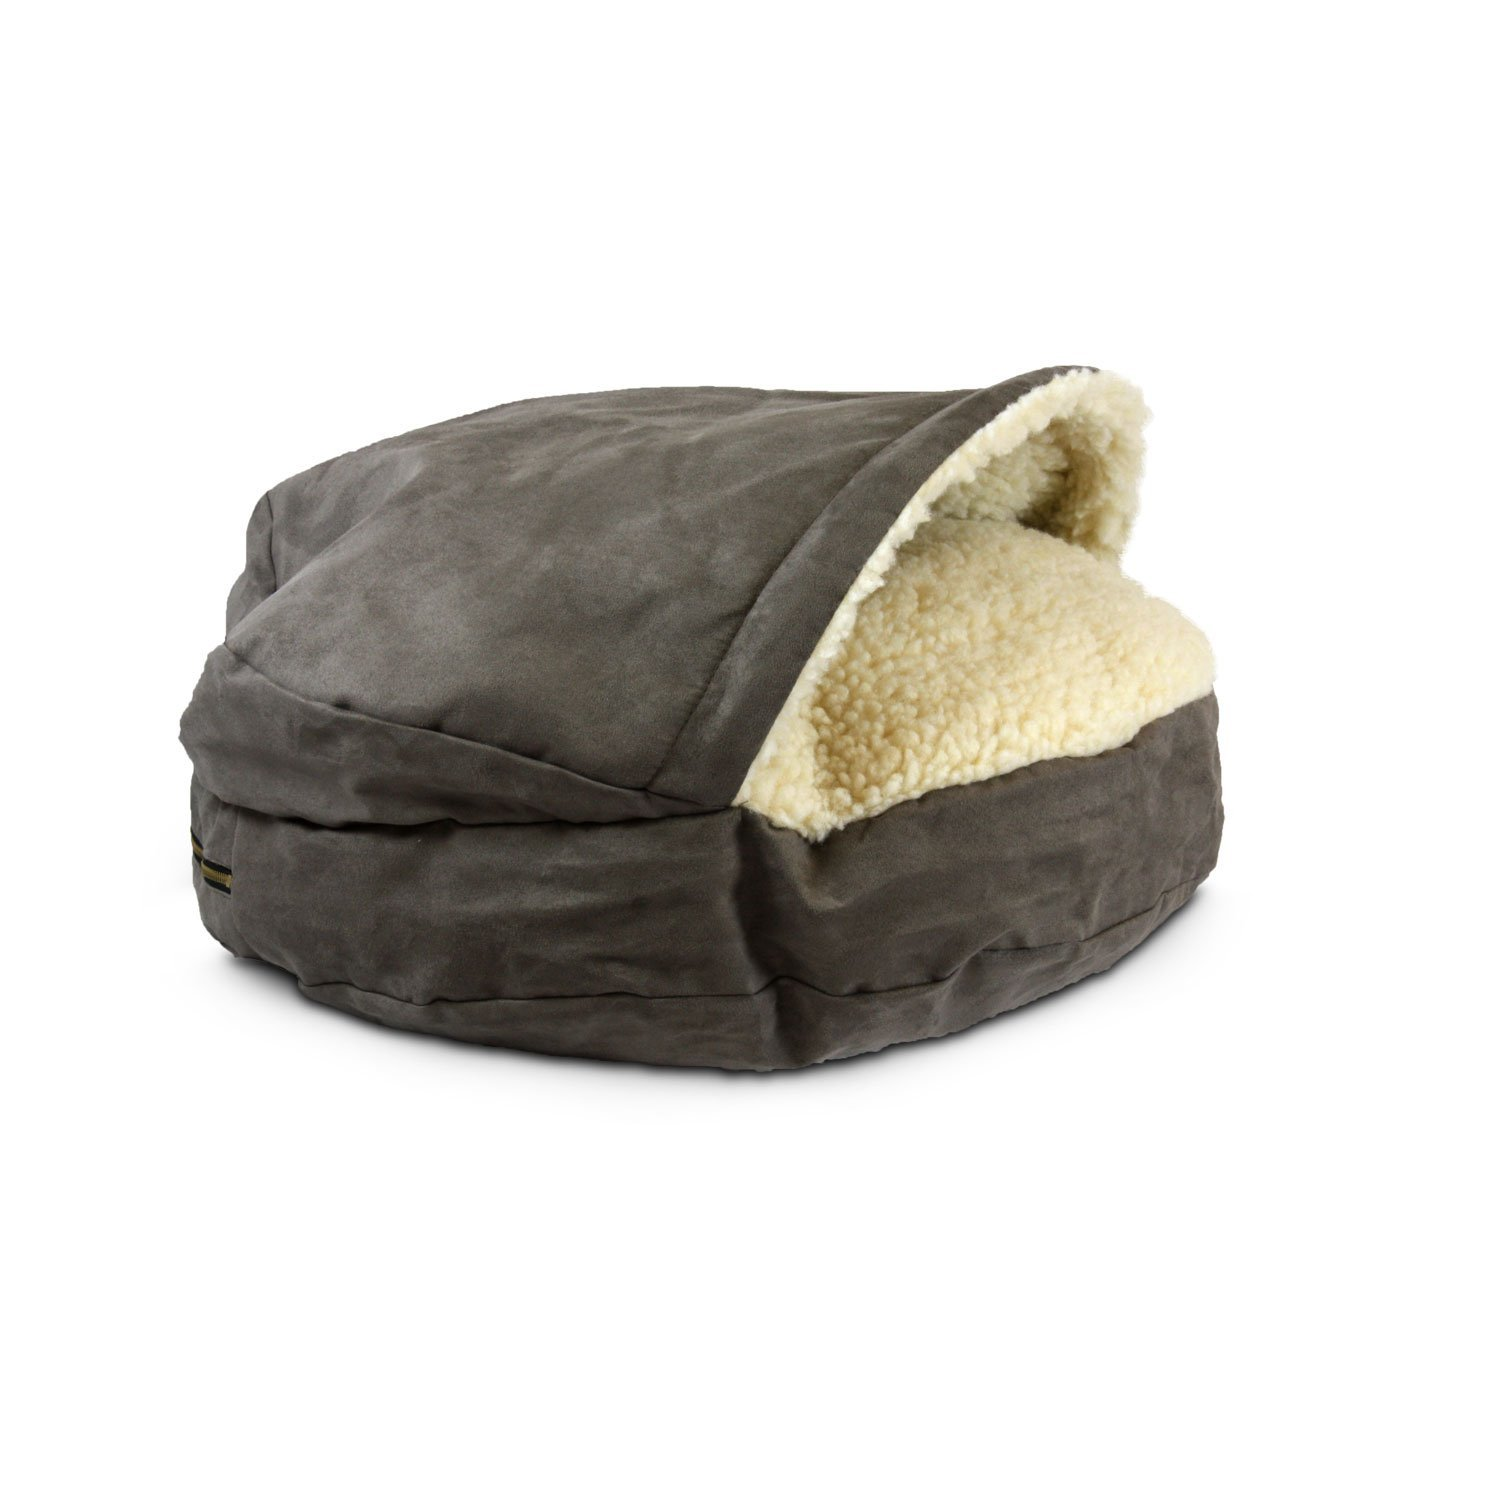 Snoozer Luxury Orthopedic Cozy Cave Pet Bed, Small, Dark Chocolate by Snoozer